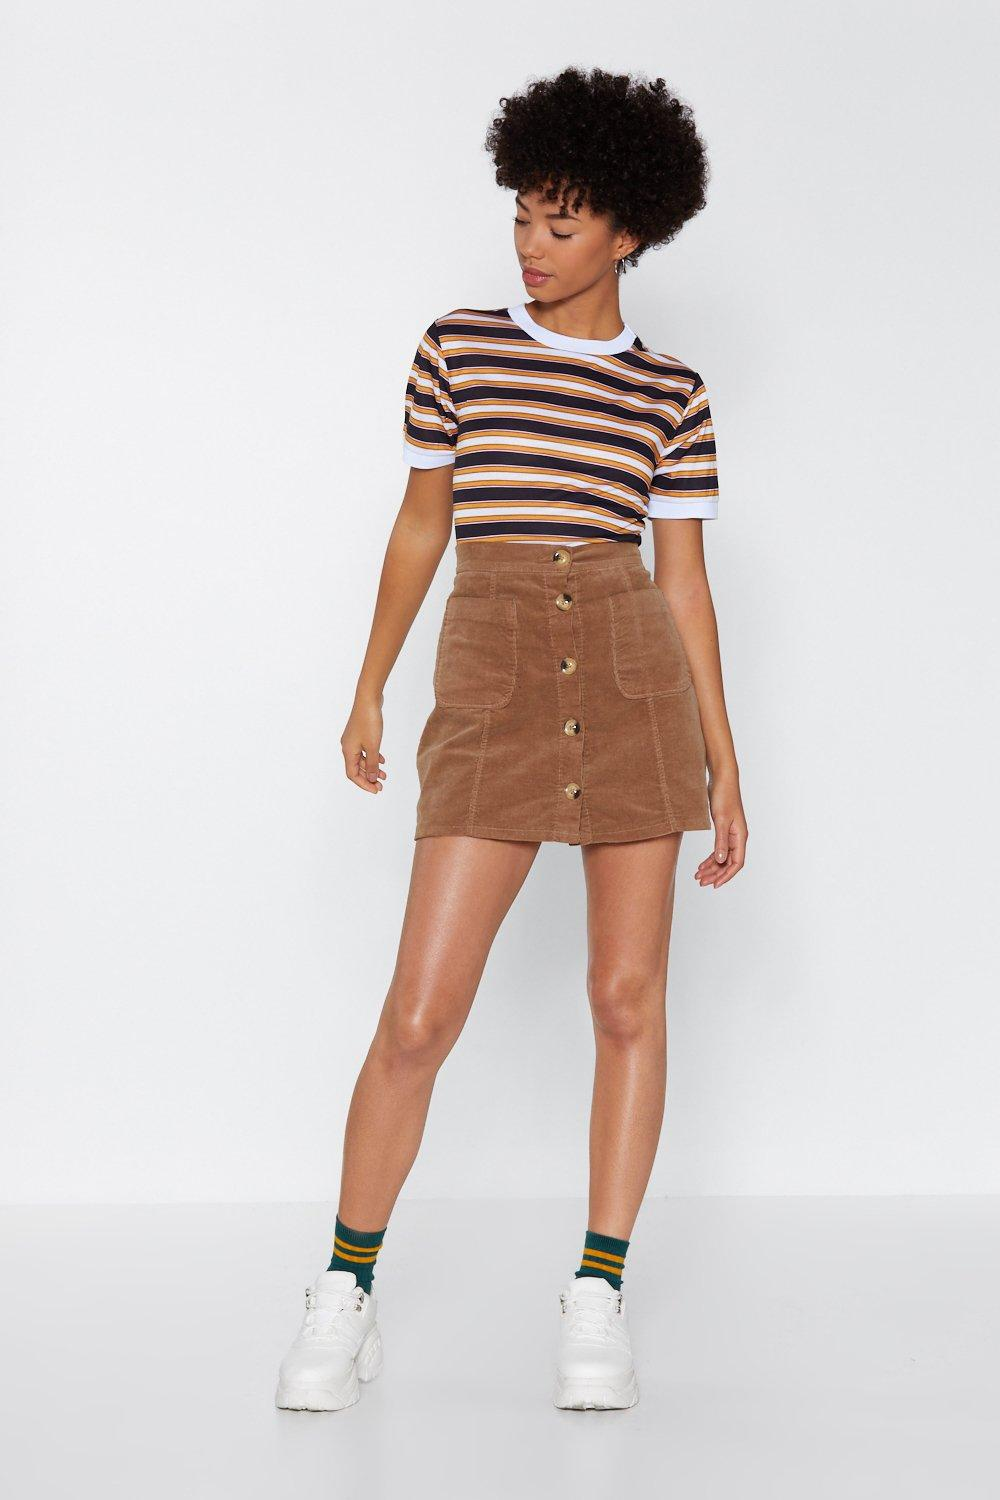 e9cab1b0b5 From Now Button Corduroy Skirt | Shop Clothes at Nasty Gal!